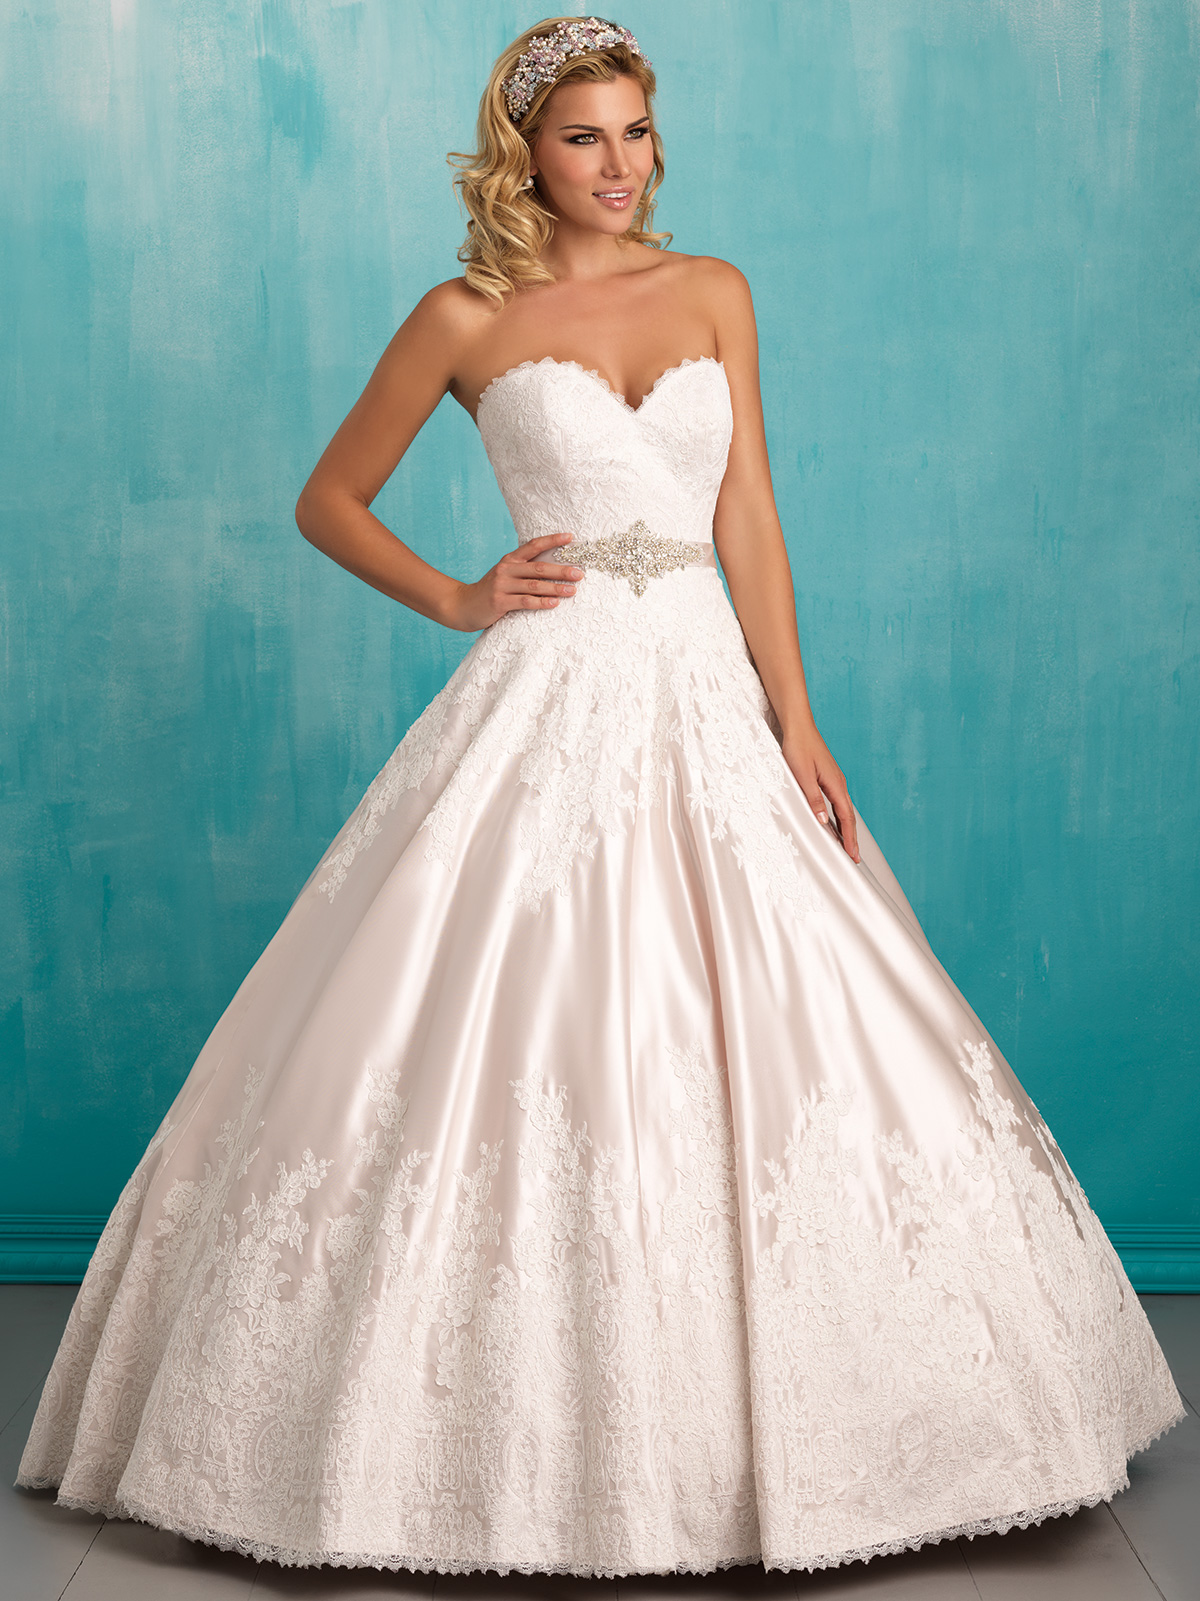 Allure 9303 Sweetheart Satin Ball Gown Bridal Dress|DimitraDesigns.com